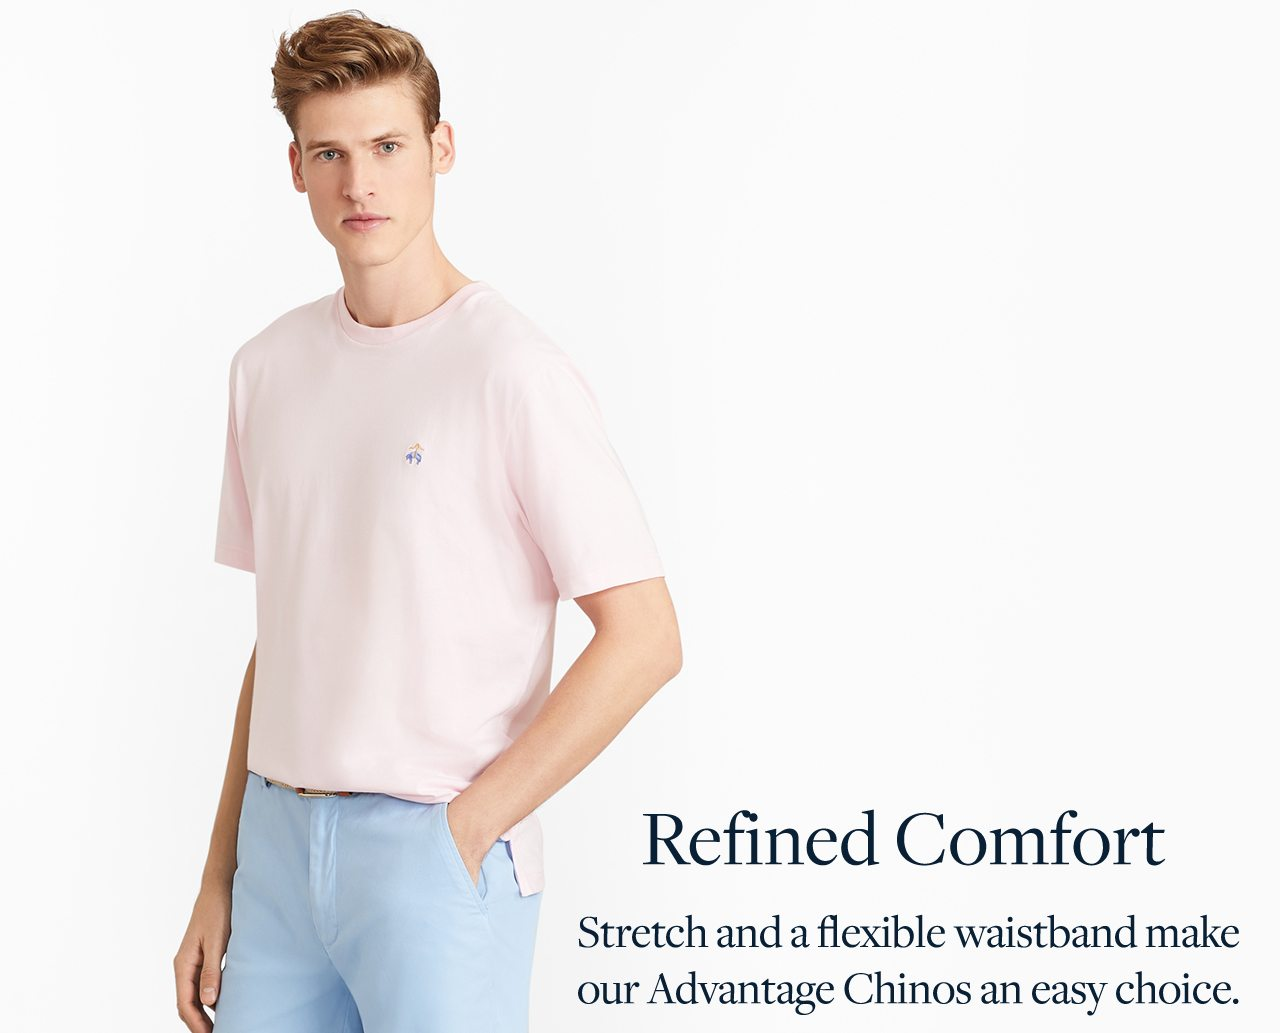 Refined Comfort - Stretch and a flexible waistband make our Advantage Chinos an easy choice.